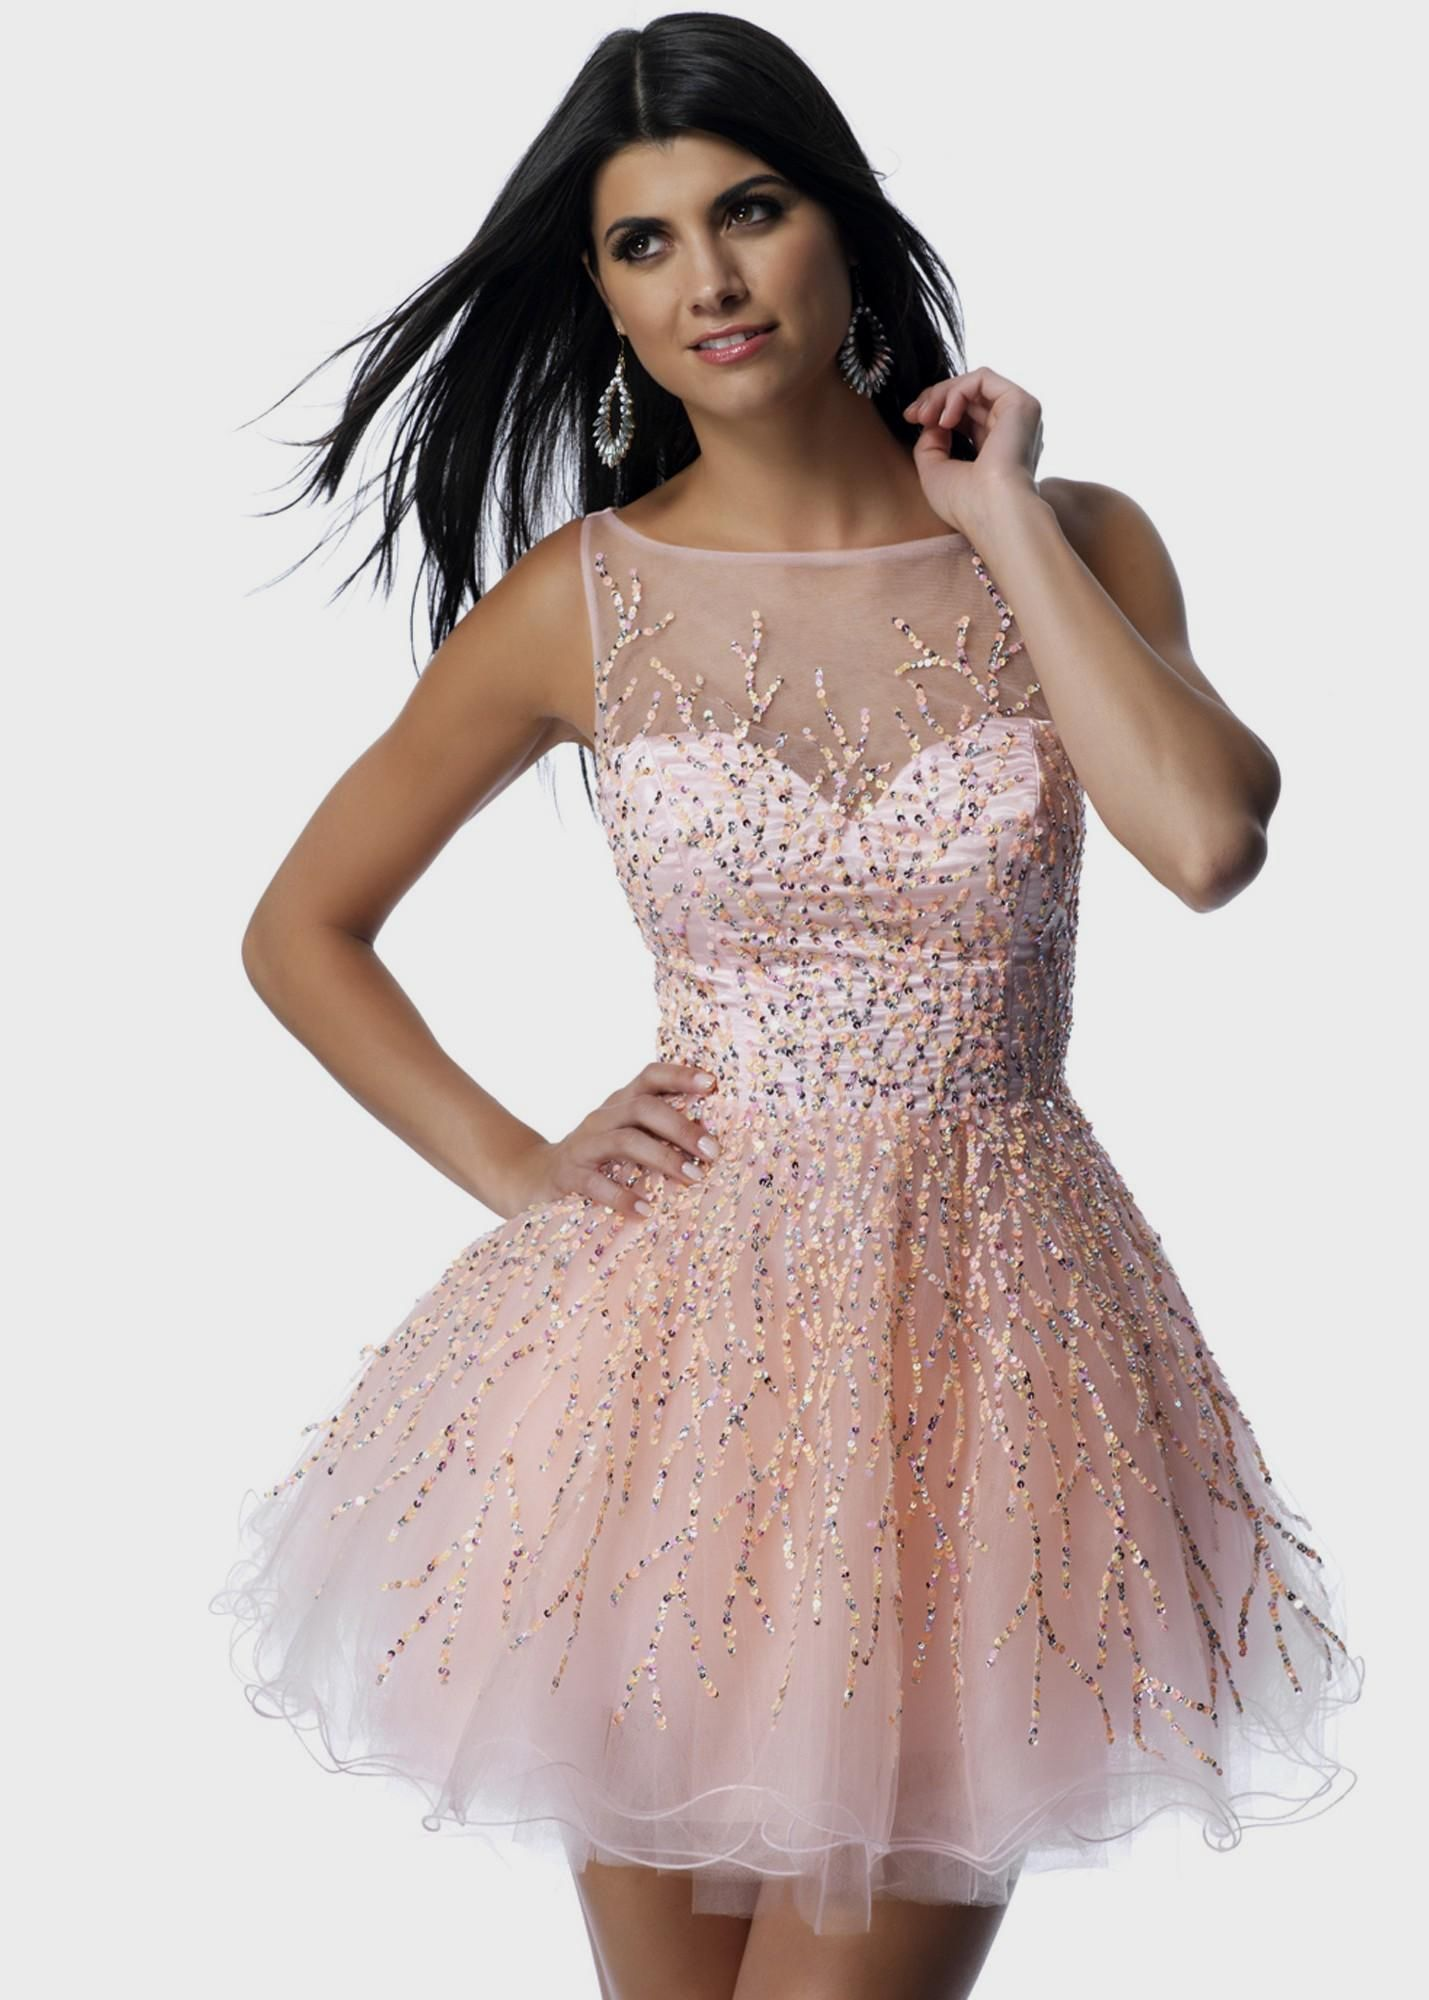 Dresses For Teenage Wedding Guests Wedding Dresses For Cheap - Wedding Dresses For Teenage Girl